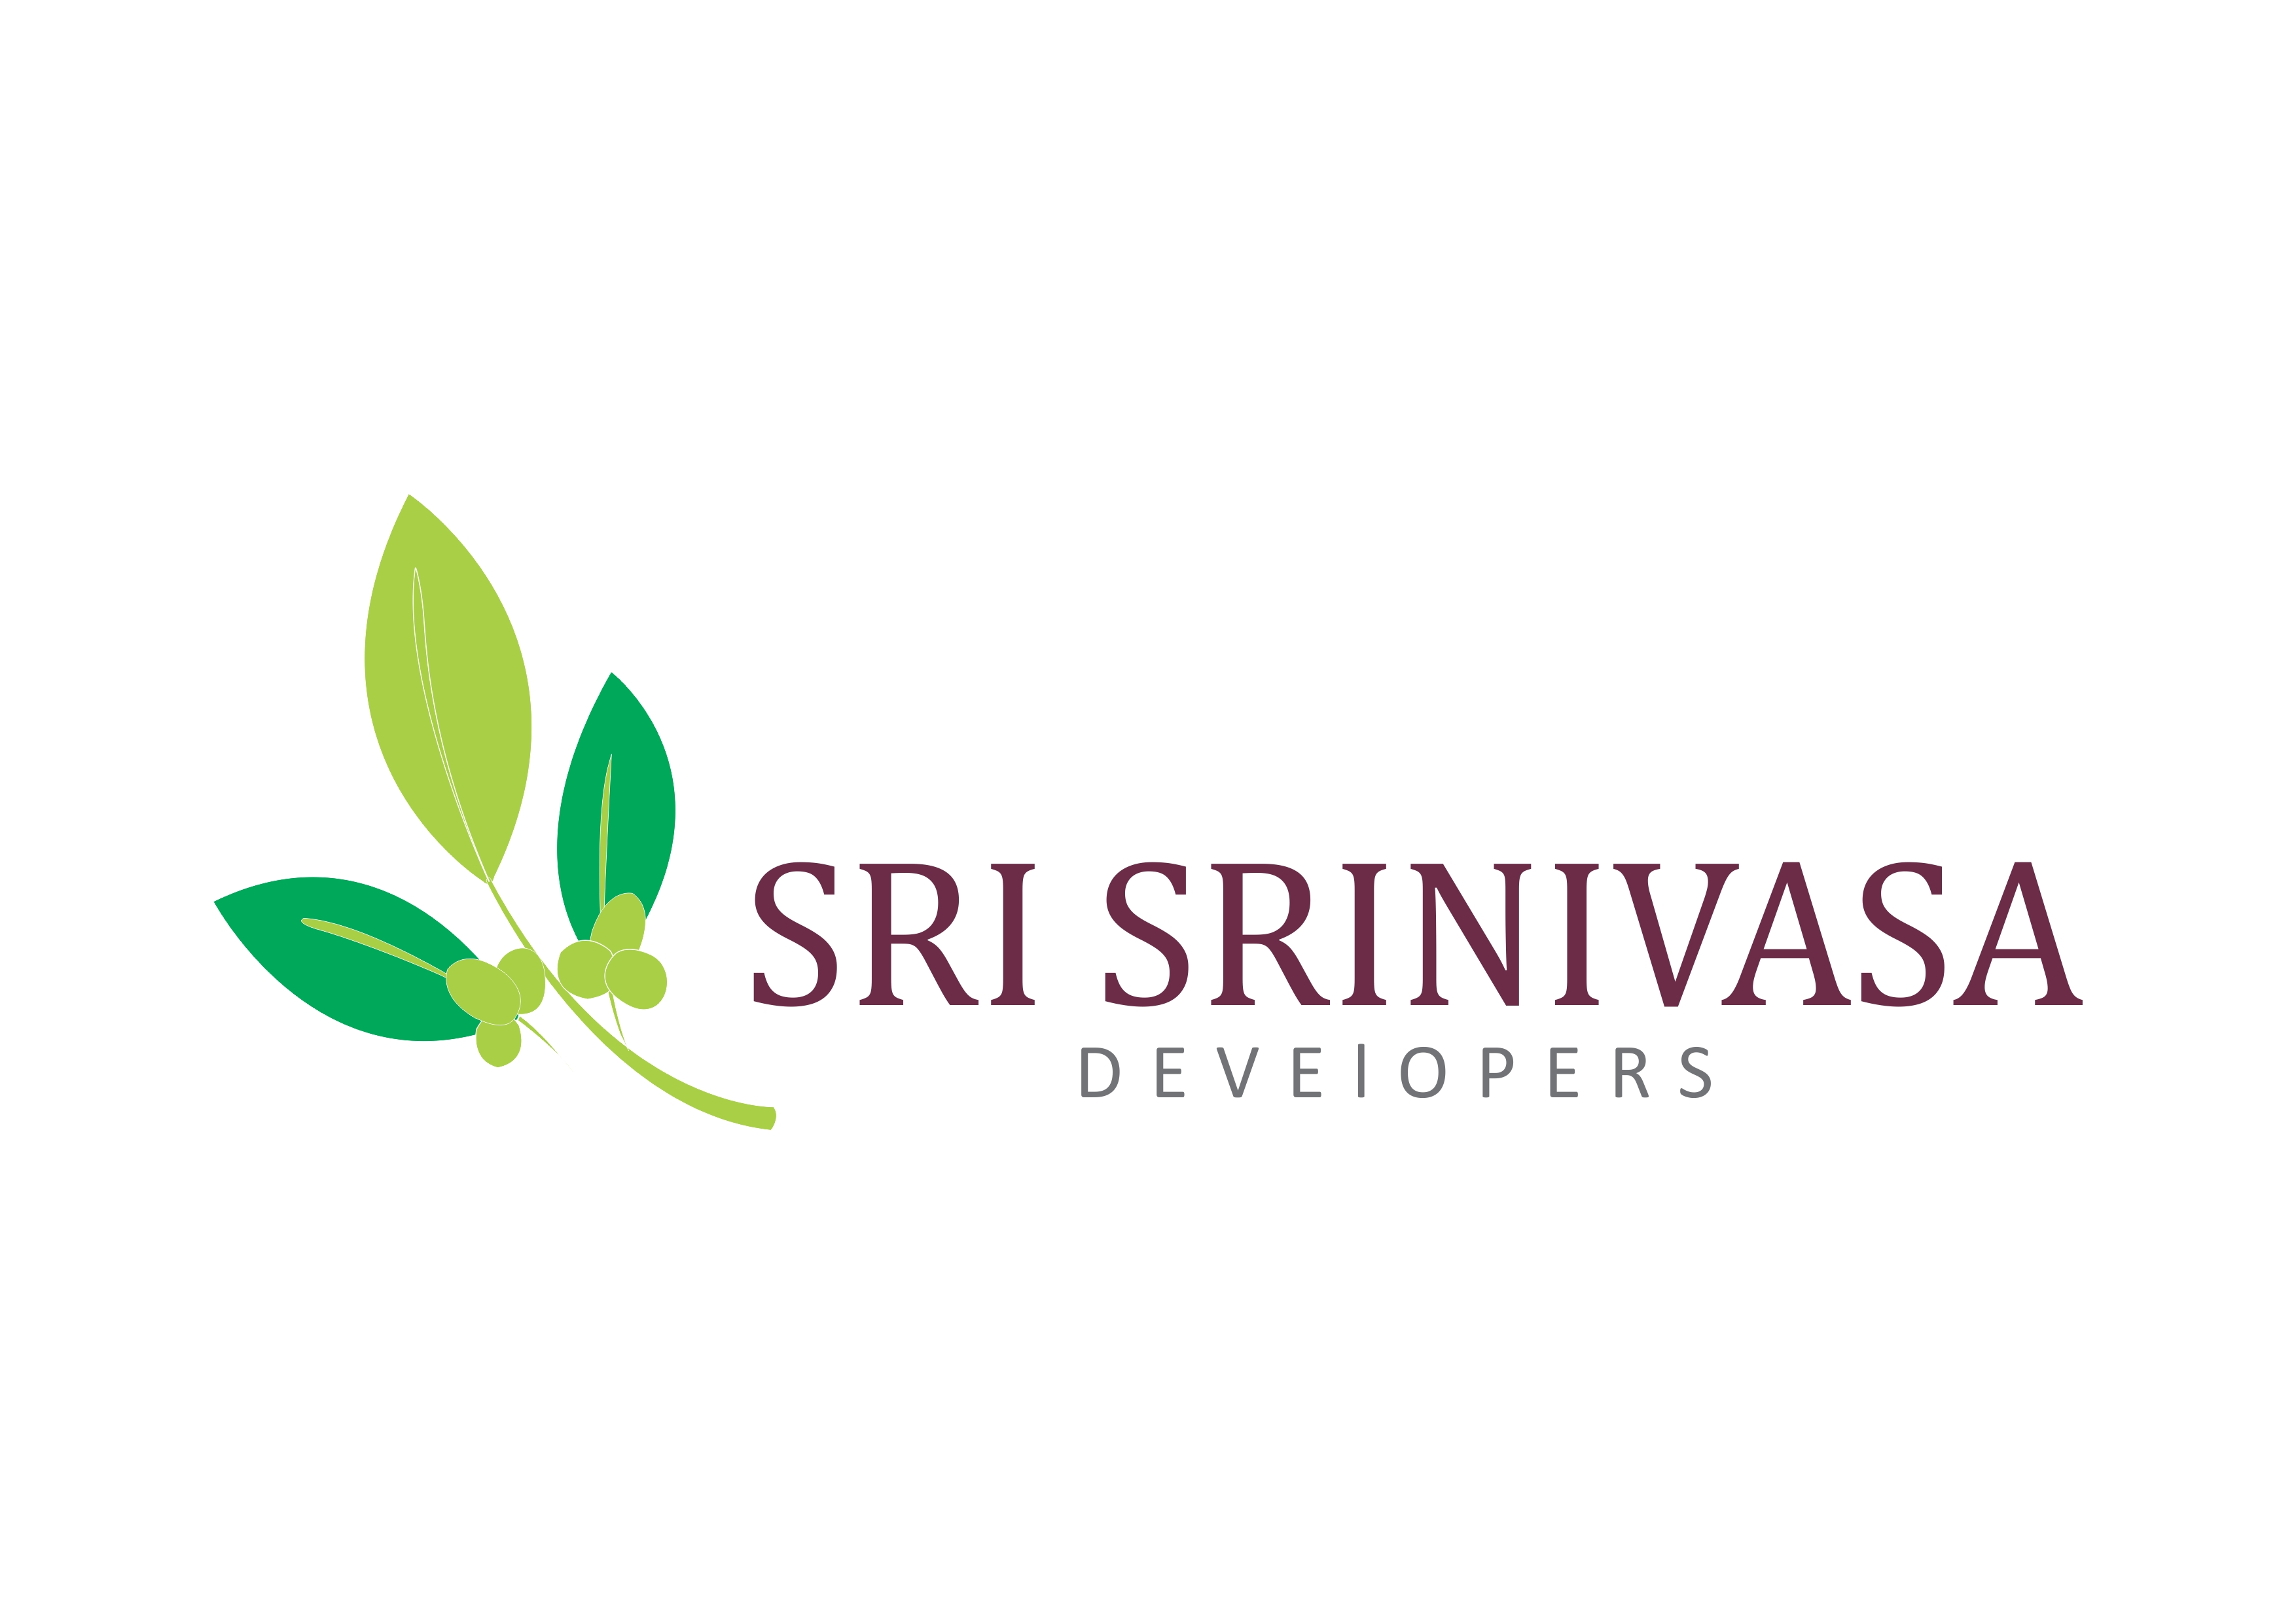 Srinivasadevelopers